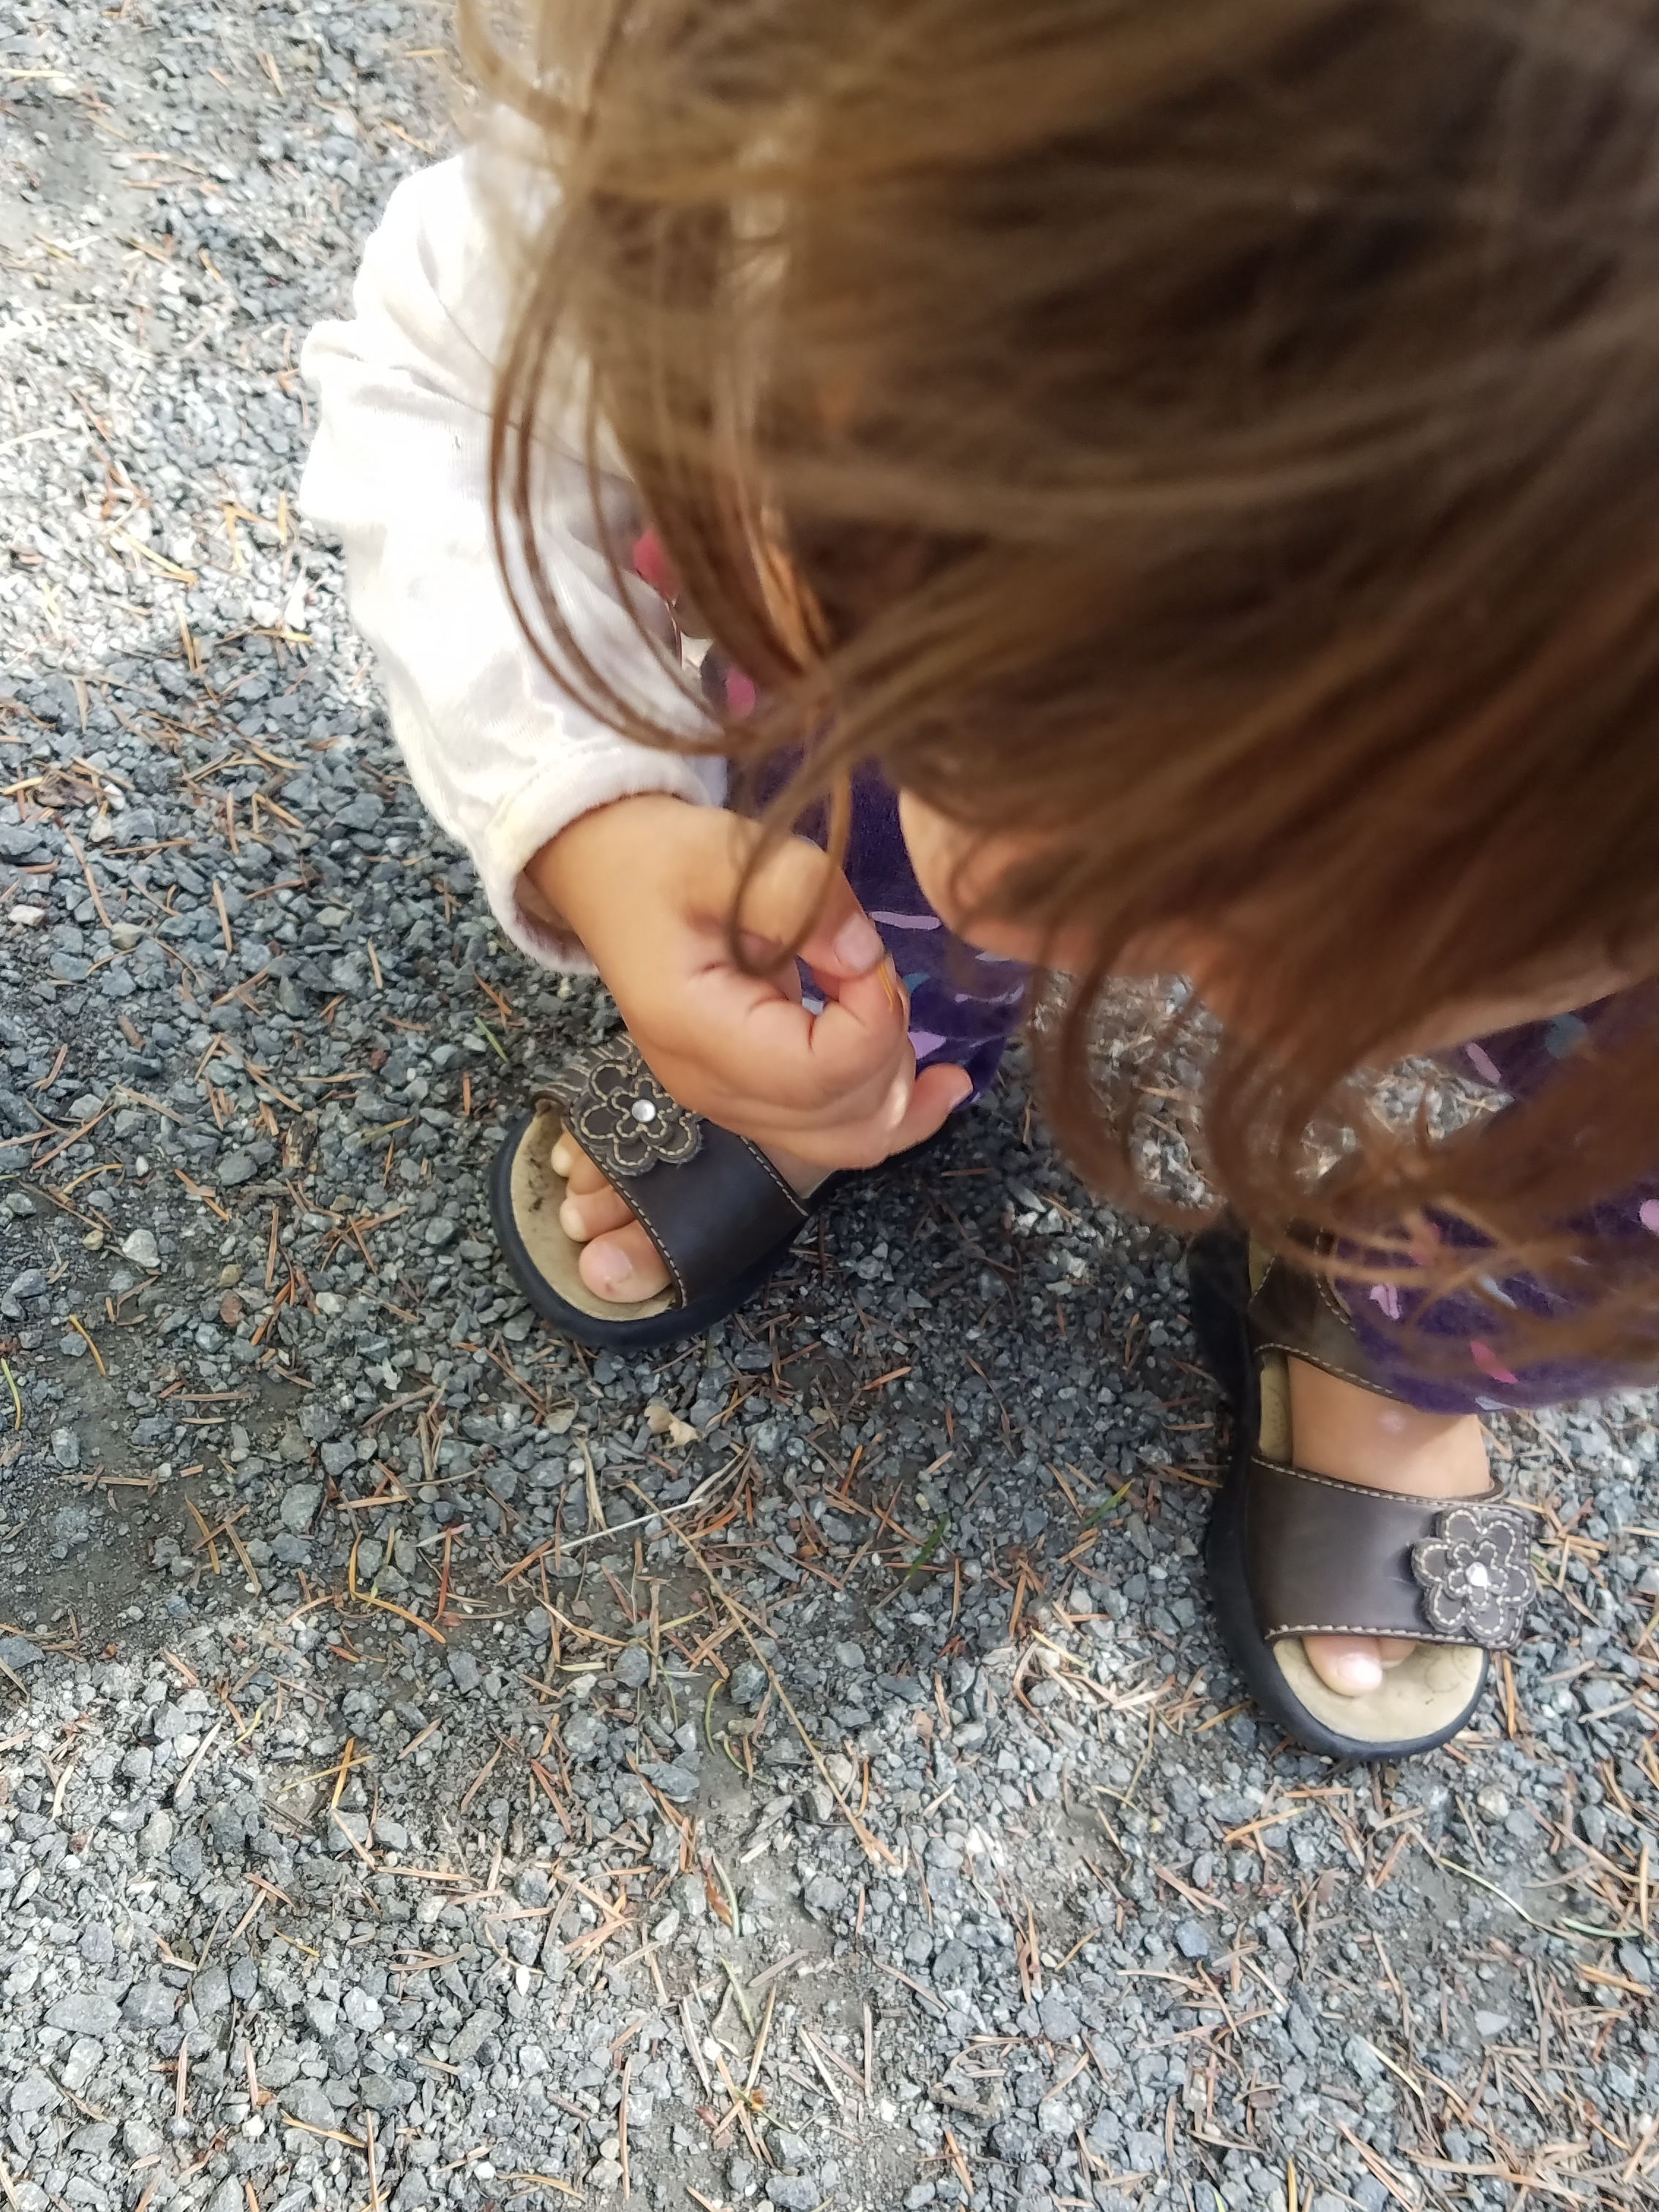 Examining fir needles and ants on the gravel sidewalk!